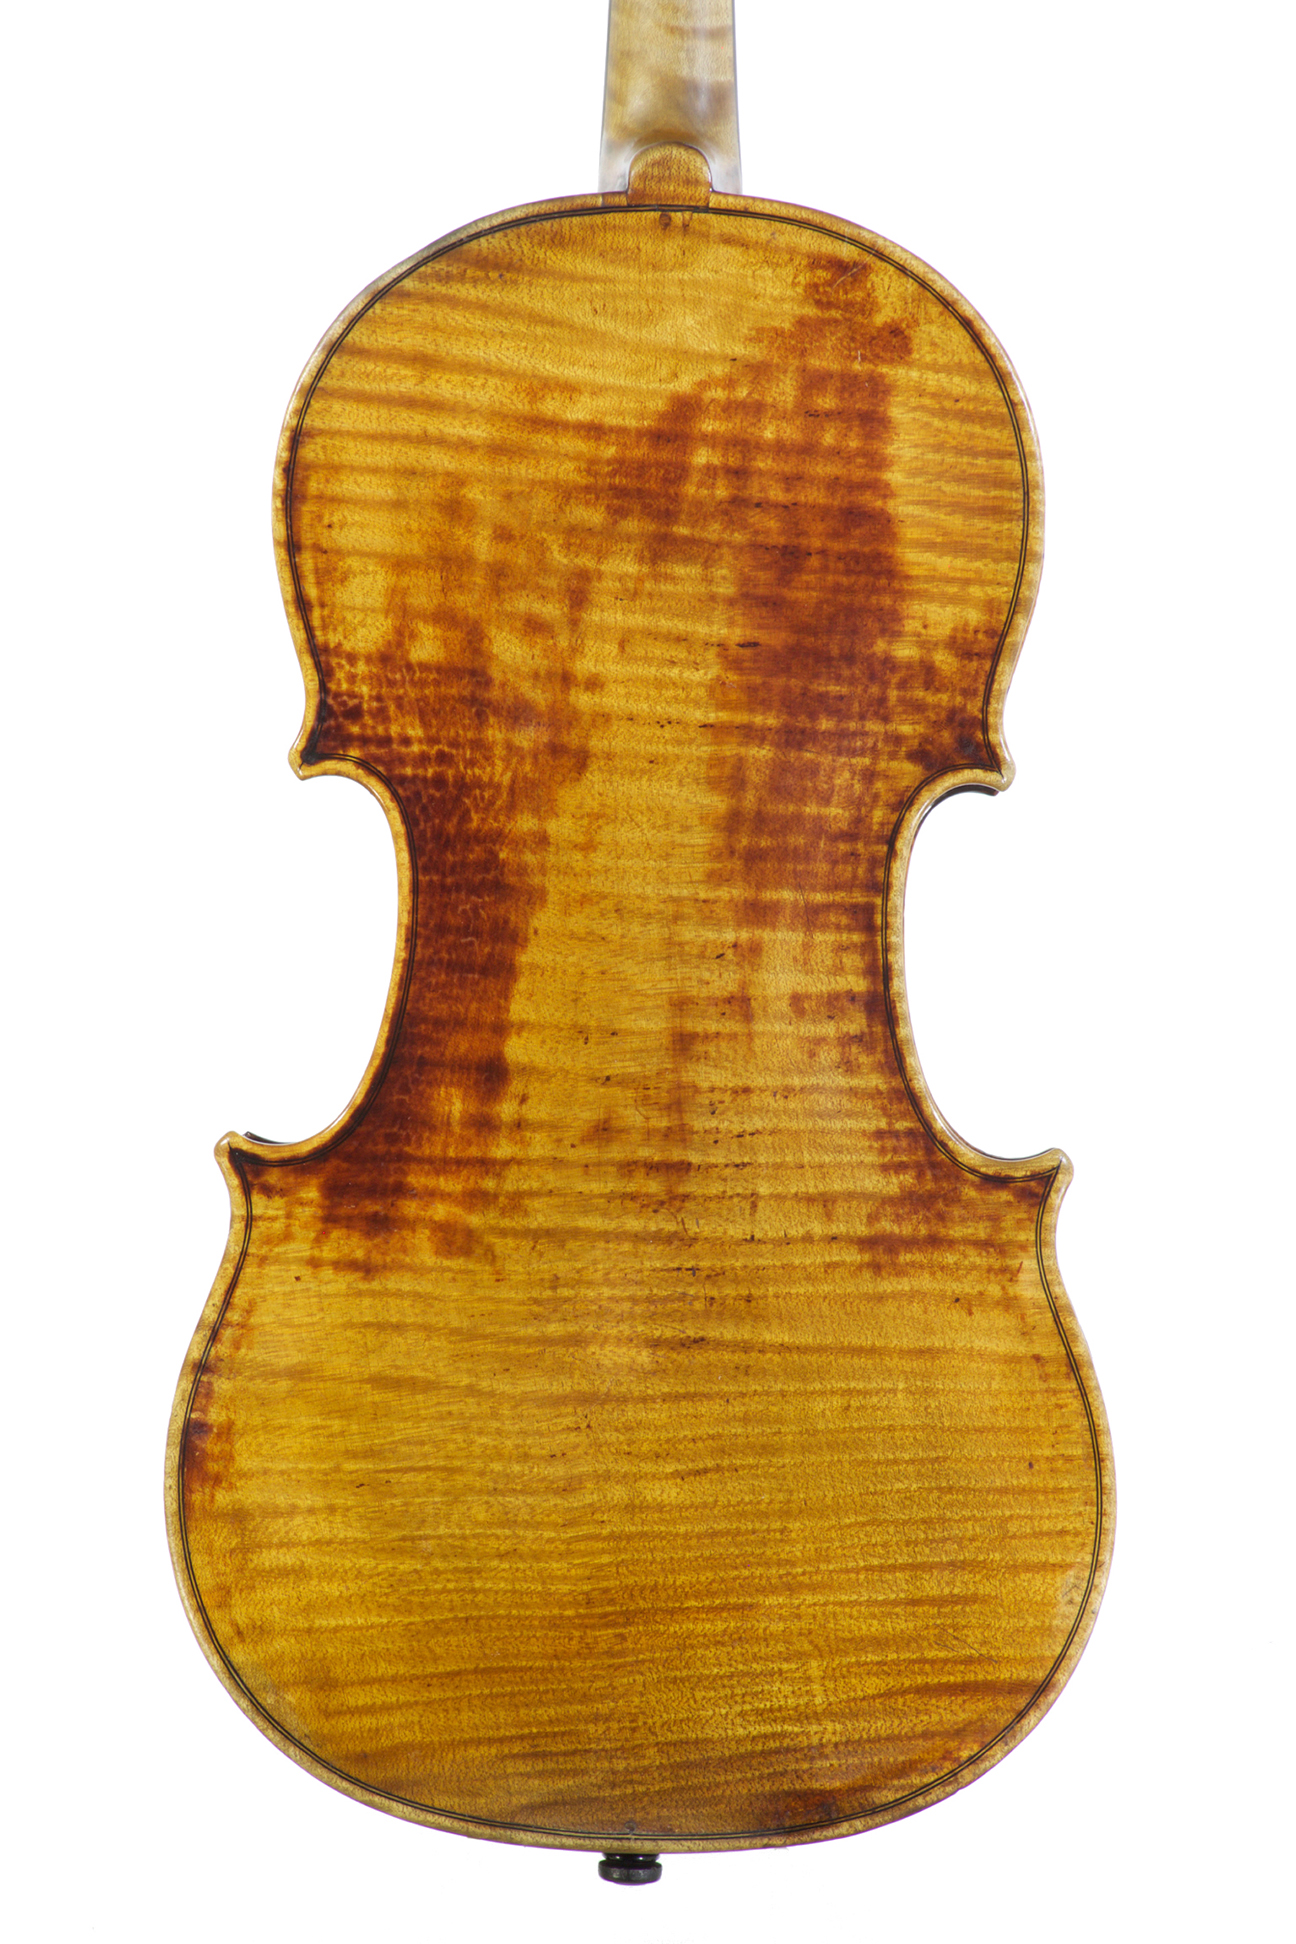 A Violin by François-Louis Pique - Back